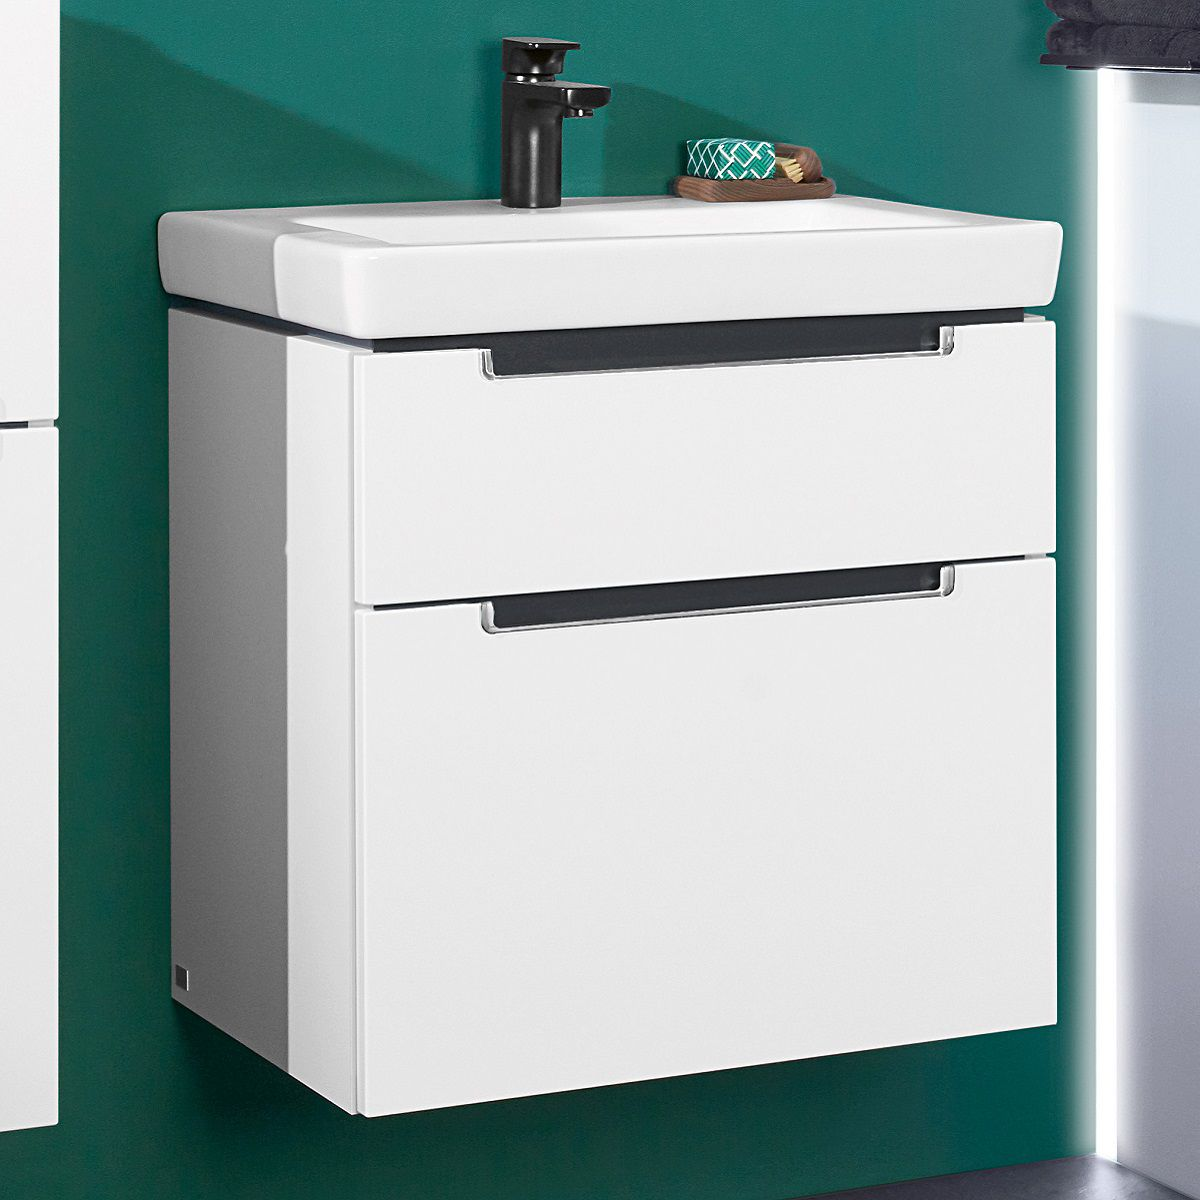 Villeroy & Boch Subway 2.0 XXL 2 Drawer Vanity